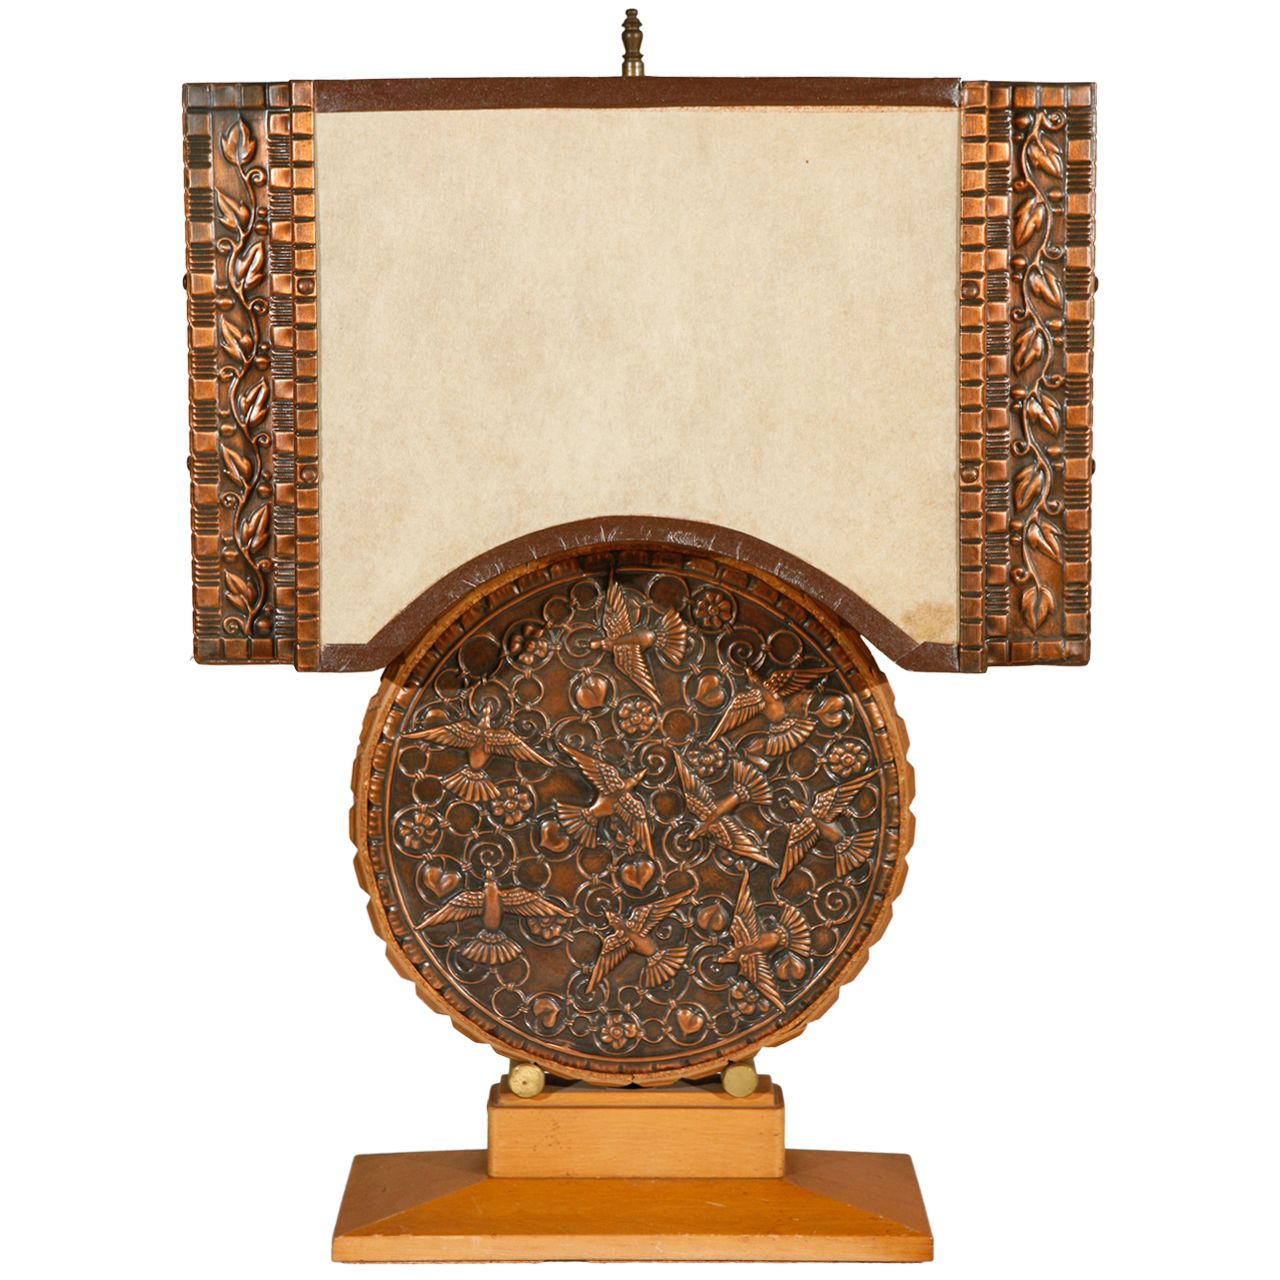 Repousse Table Lamp and Shade (Round Body) | From a unique collection of antique and modern table lamps at http://www.1stdibs.com/furniture/lighting/table-lamps/